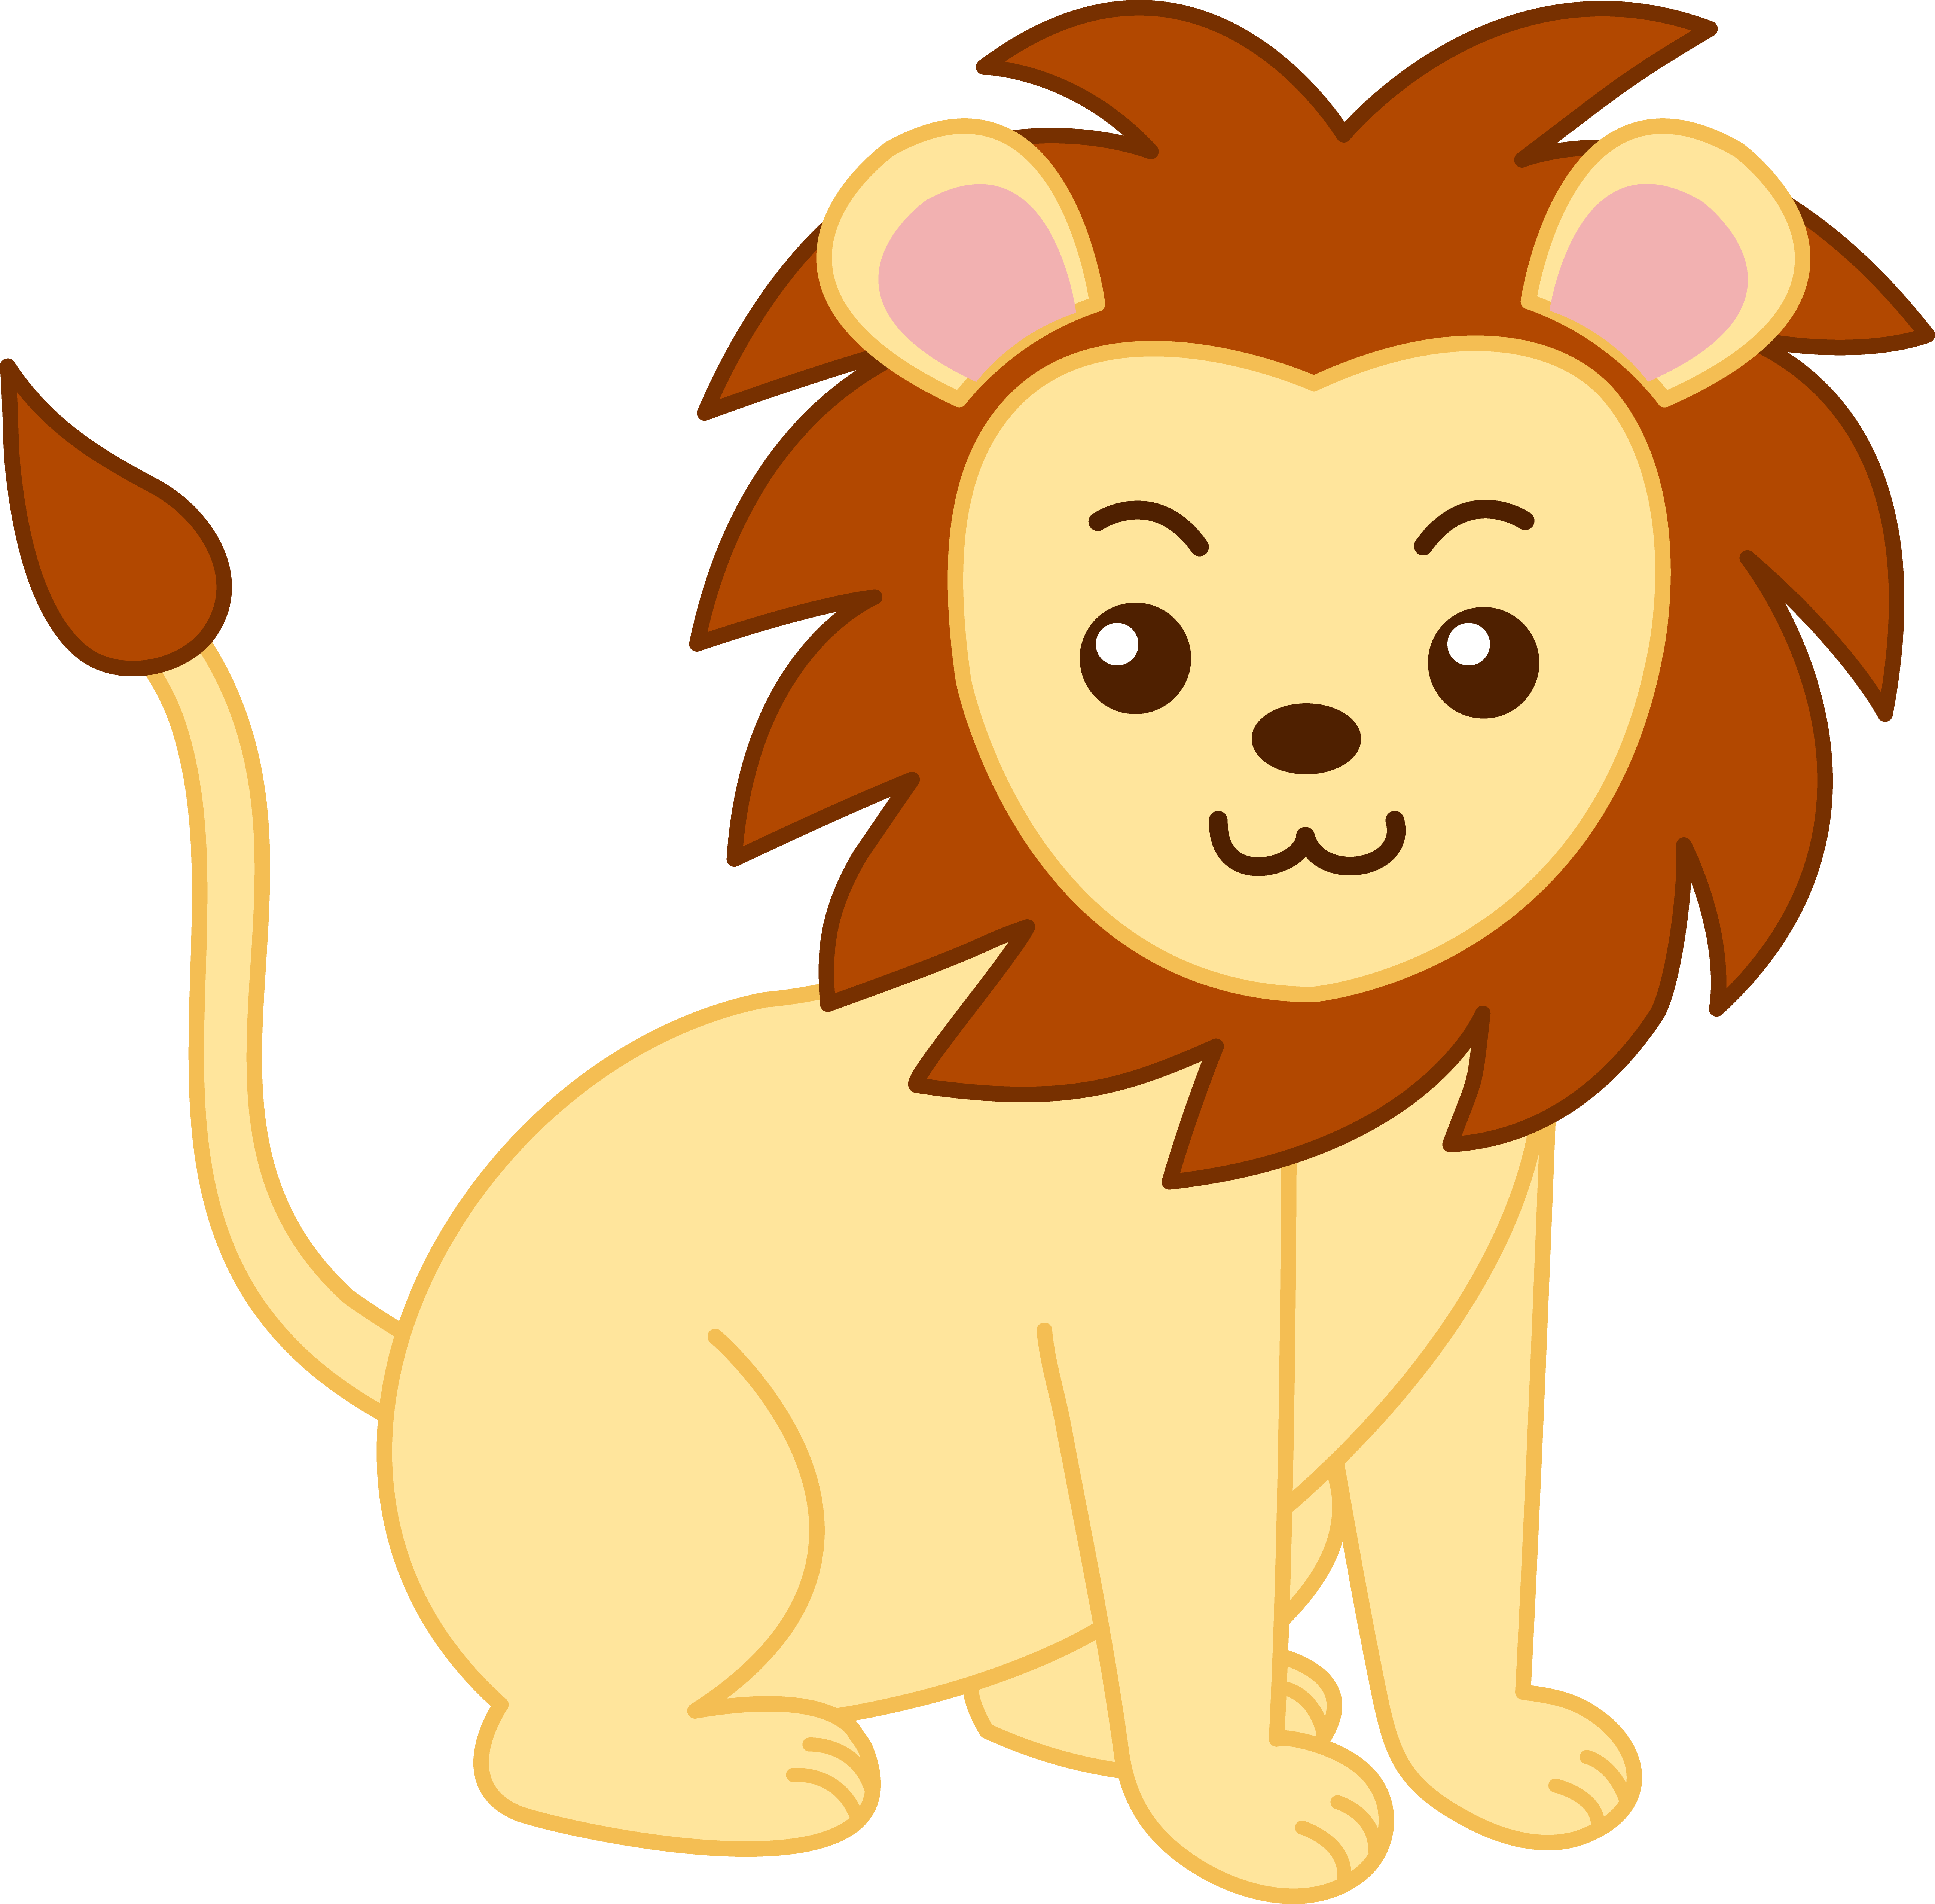 Stinky dog clipart image royalty free download Baby Lion Clipart | Clipart Panda - Free Clipart Images image royalty free download